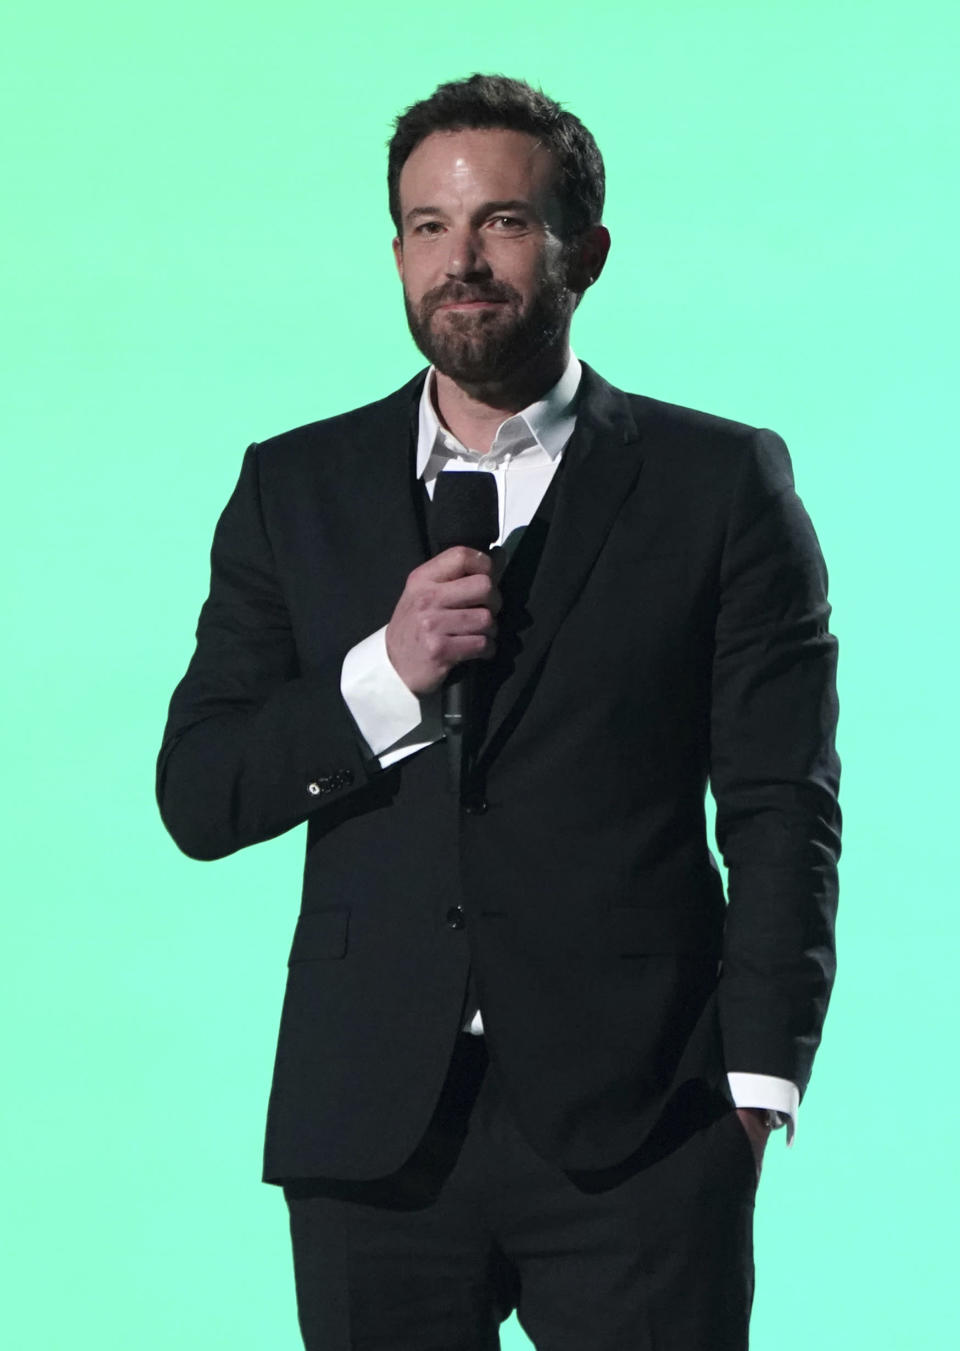 """Ben Affleck speaks at Vax Live: The Concert to Reunite the World"""" on Sunday, May 2, 2021, at SoFi Stadium in Inglewood, Calif. (Photo by Jordan Strauss/Invision/AP)"""